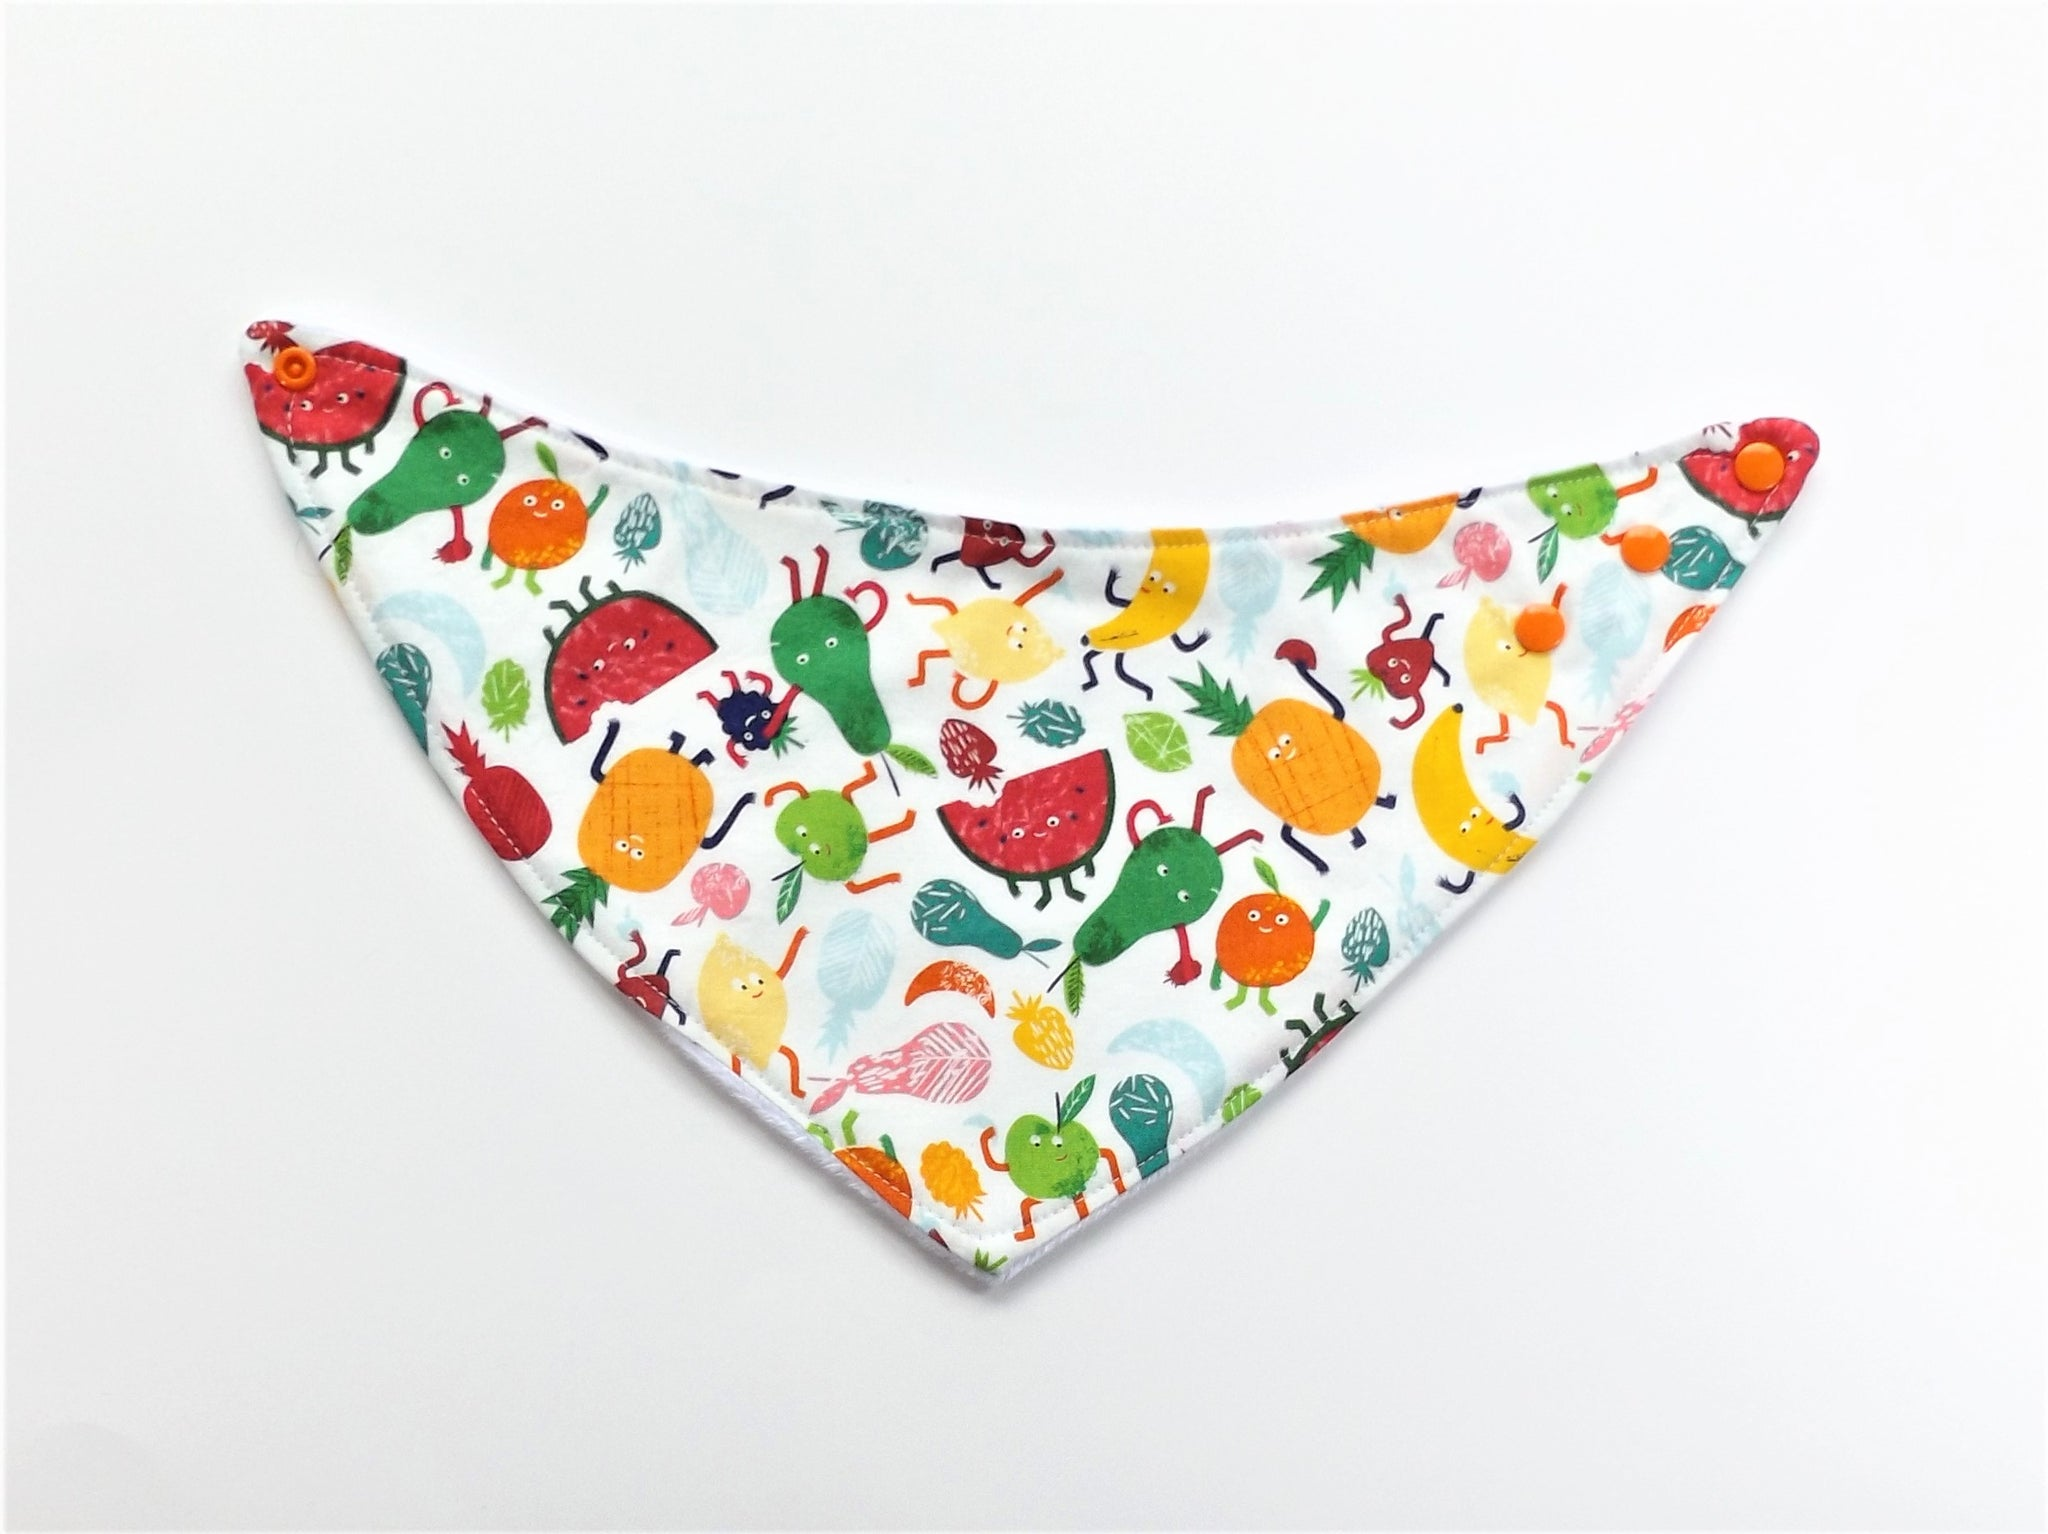 Happy Fruit Salad Bib